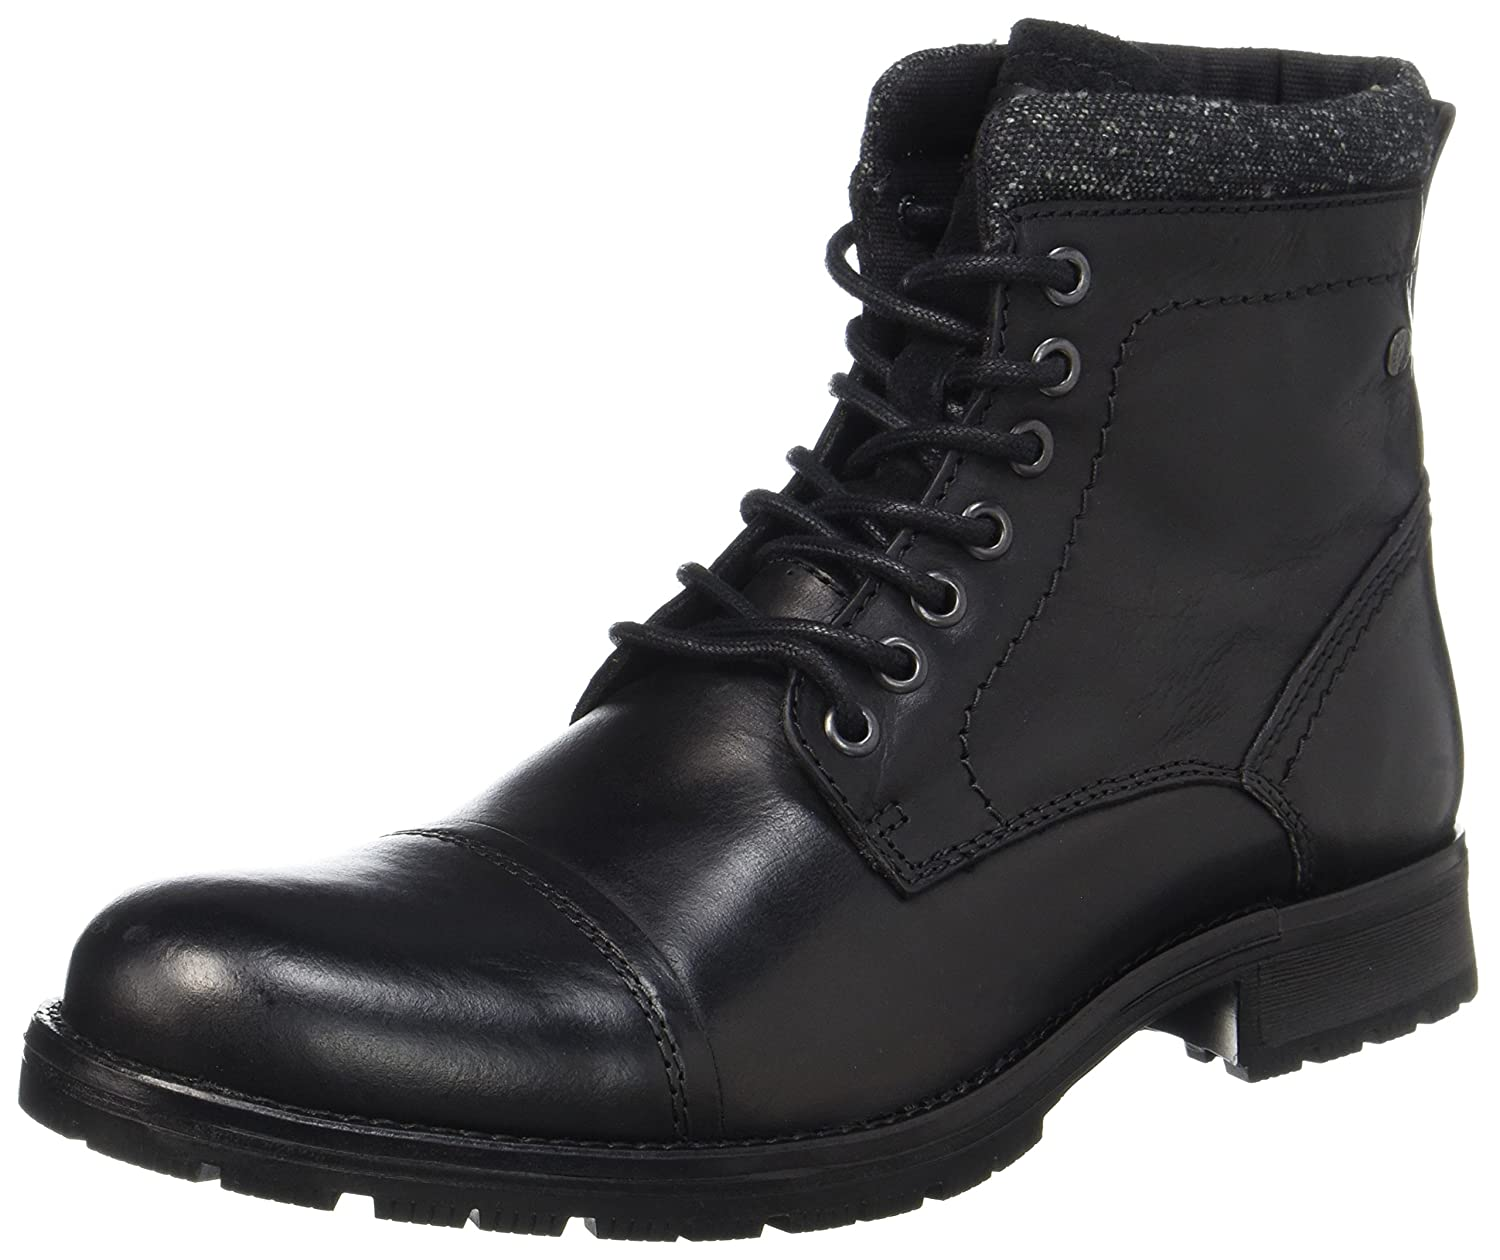 TALLA 44 EU. Jack & Jones Jfwmarly Leather Black, Botas Clasicas para Hombre